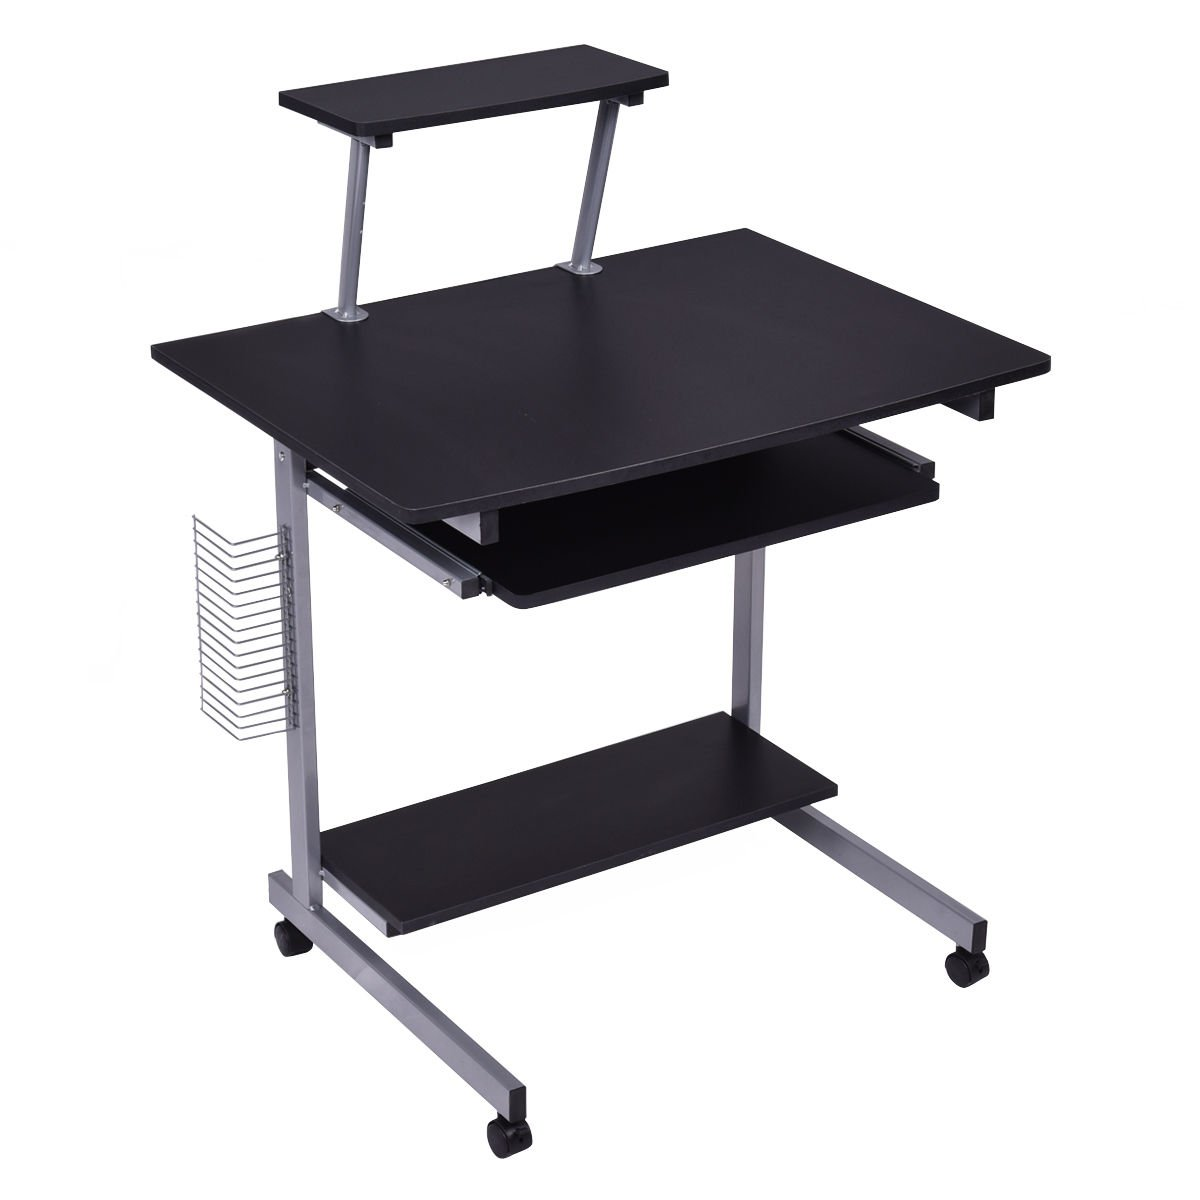 Tangkula Computer Desk Home Office Mobile Compact Workstation Laptop PC Table Table with Wheels Student Dom Apartment Compact Portable Sturdy Writing Table (black with printer shelf)